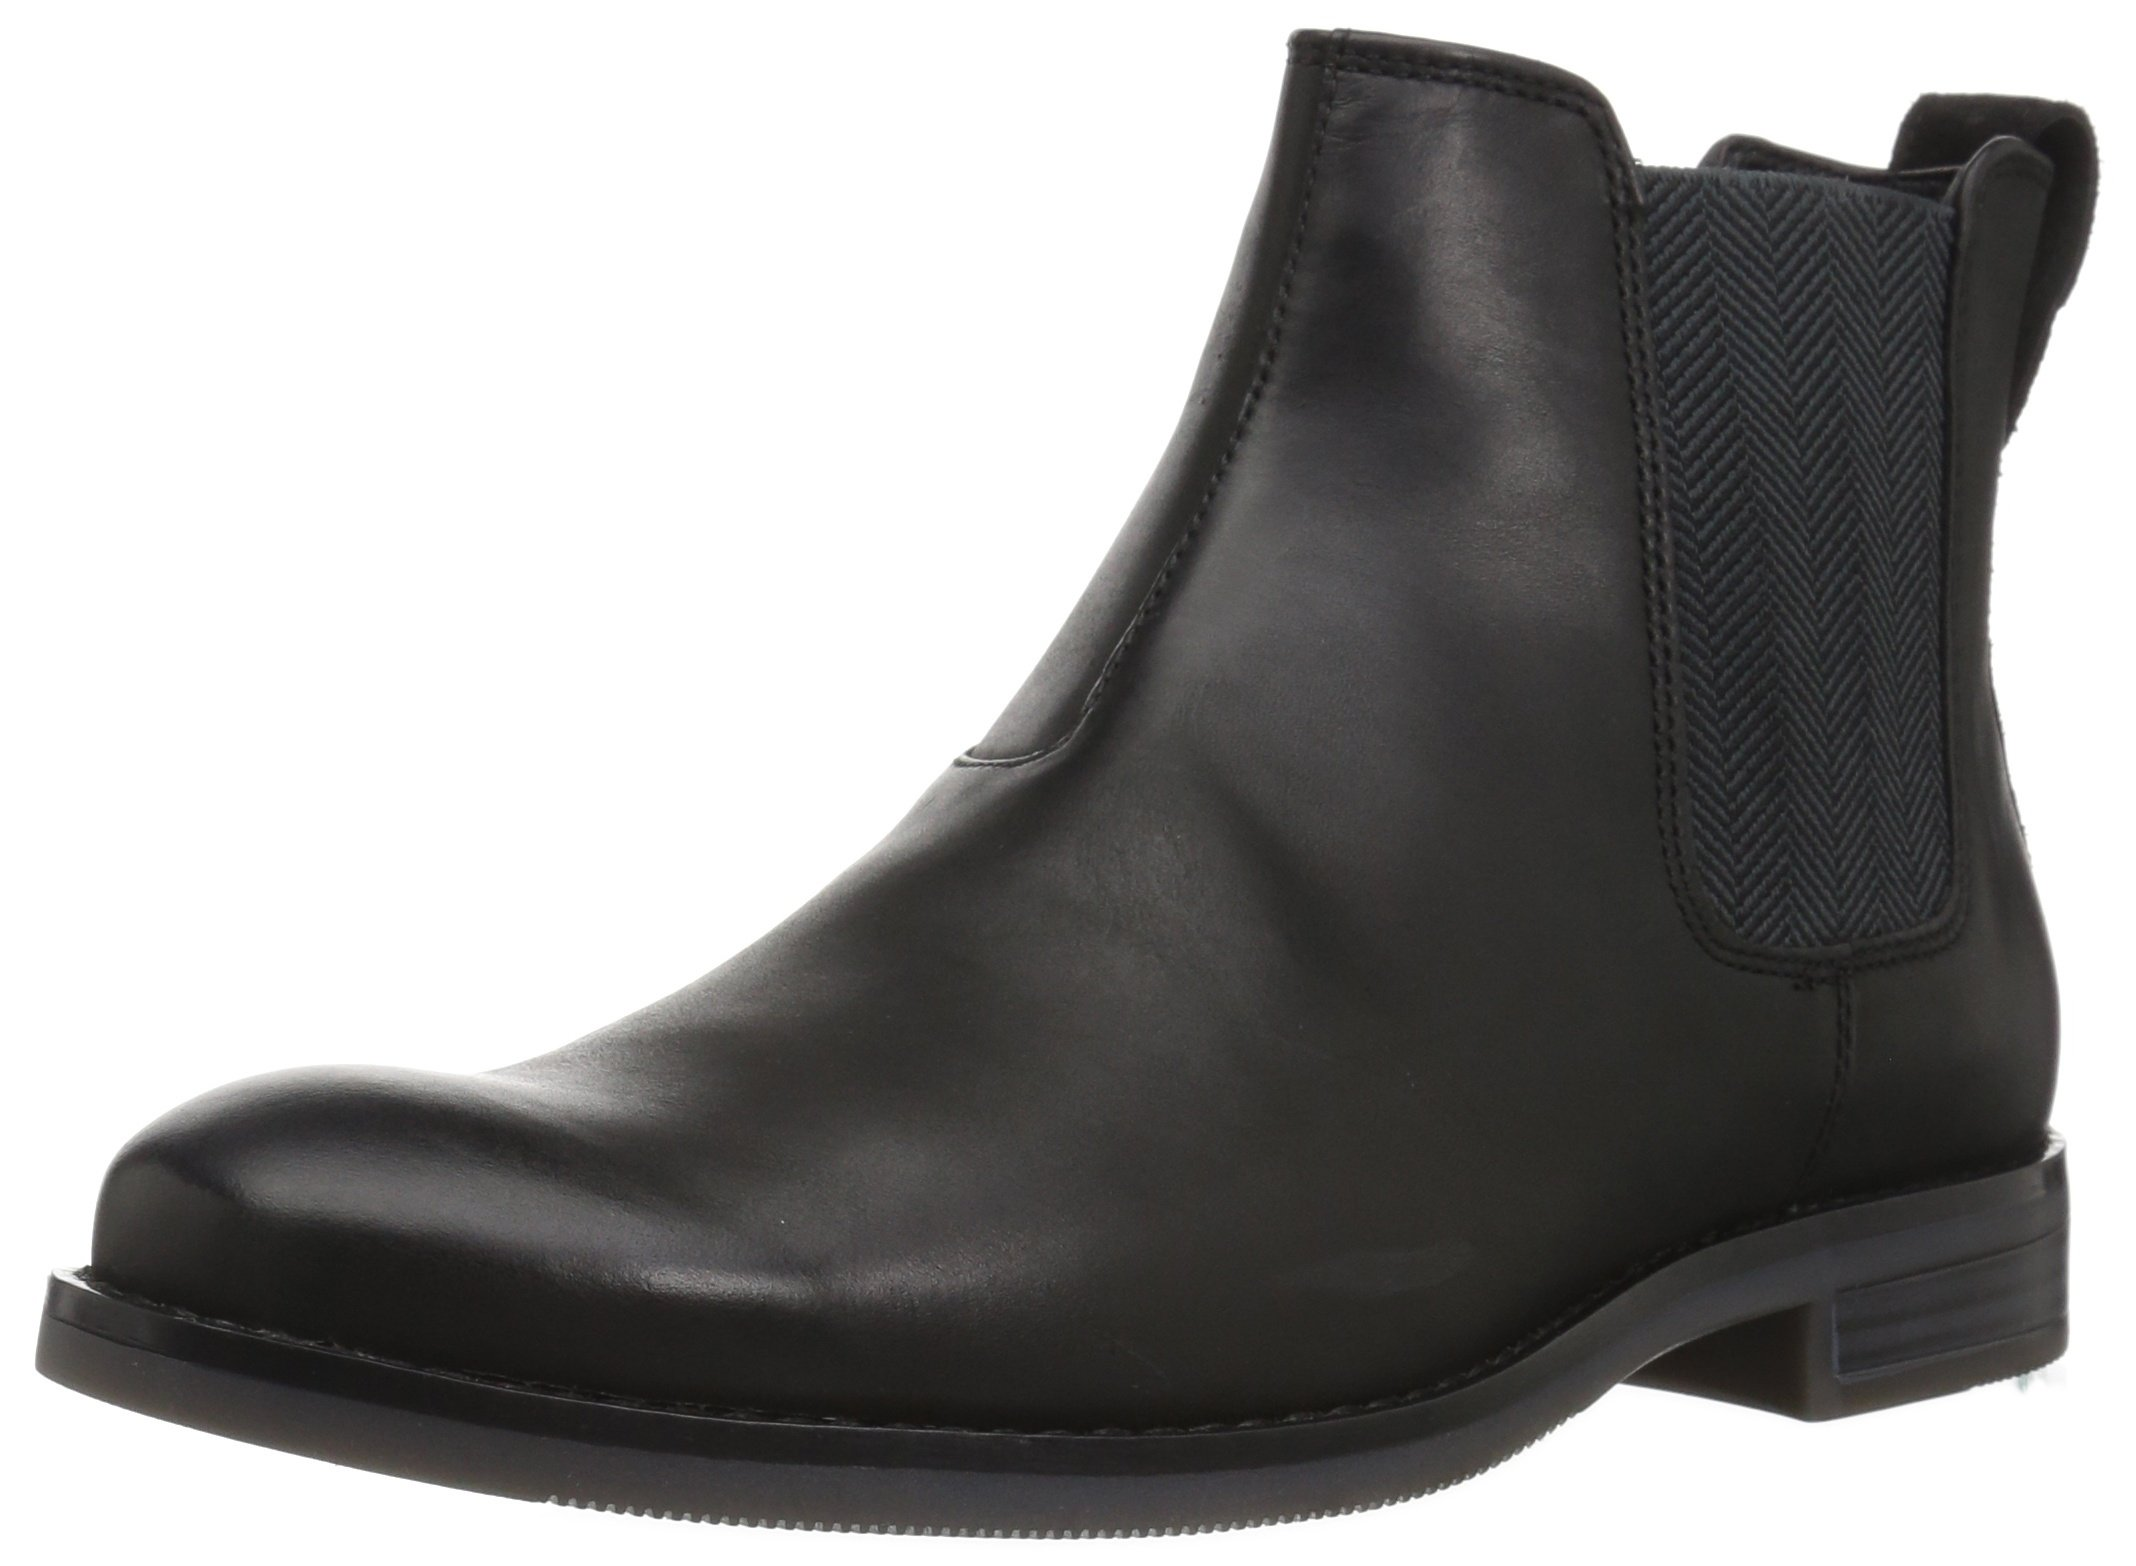 Rockport Men's Wynstin Chelsea Chelsea Boot, Black, 9.5 M US